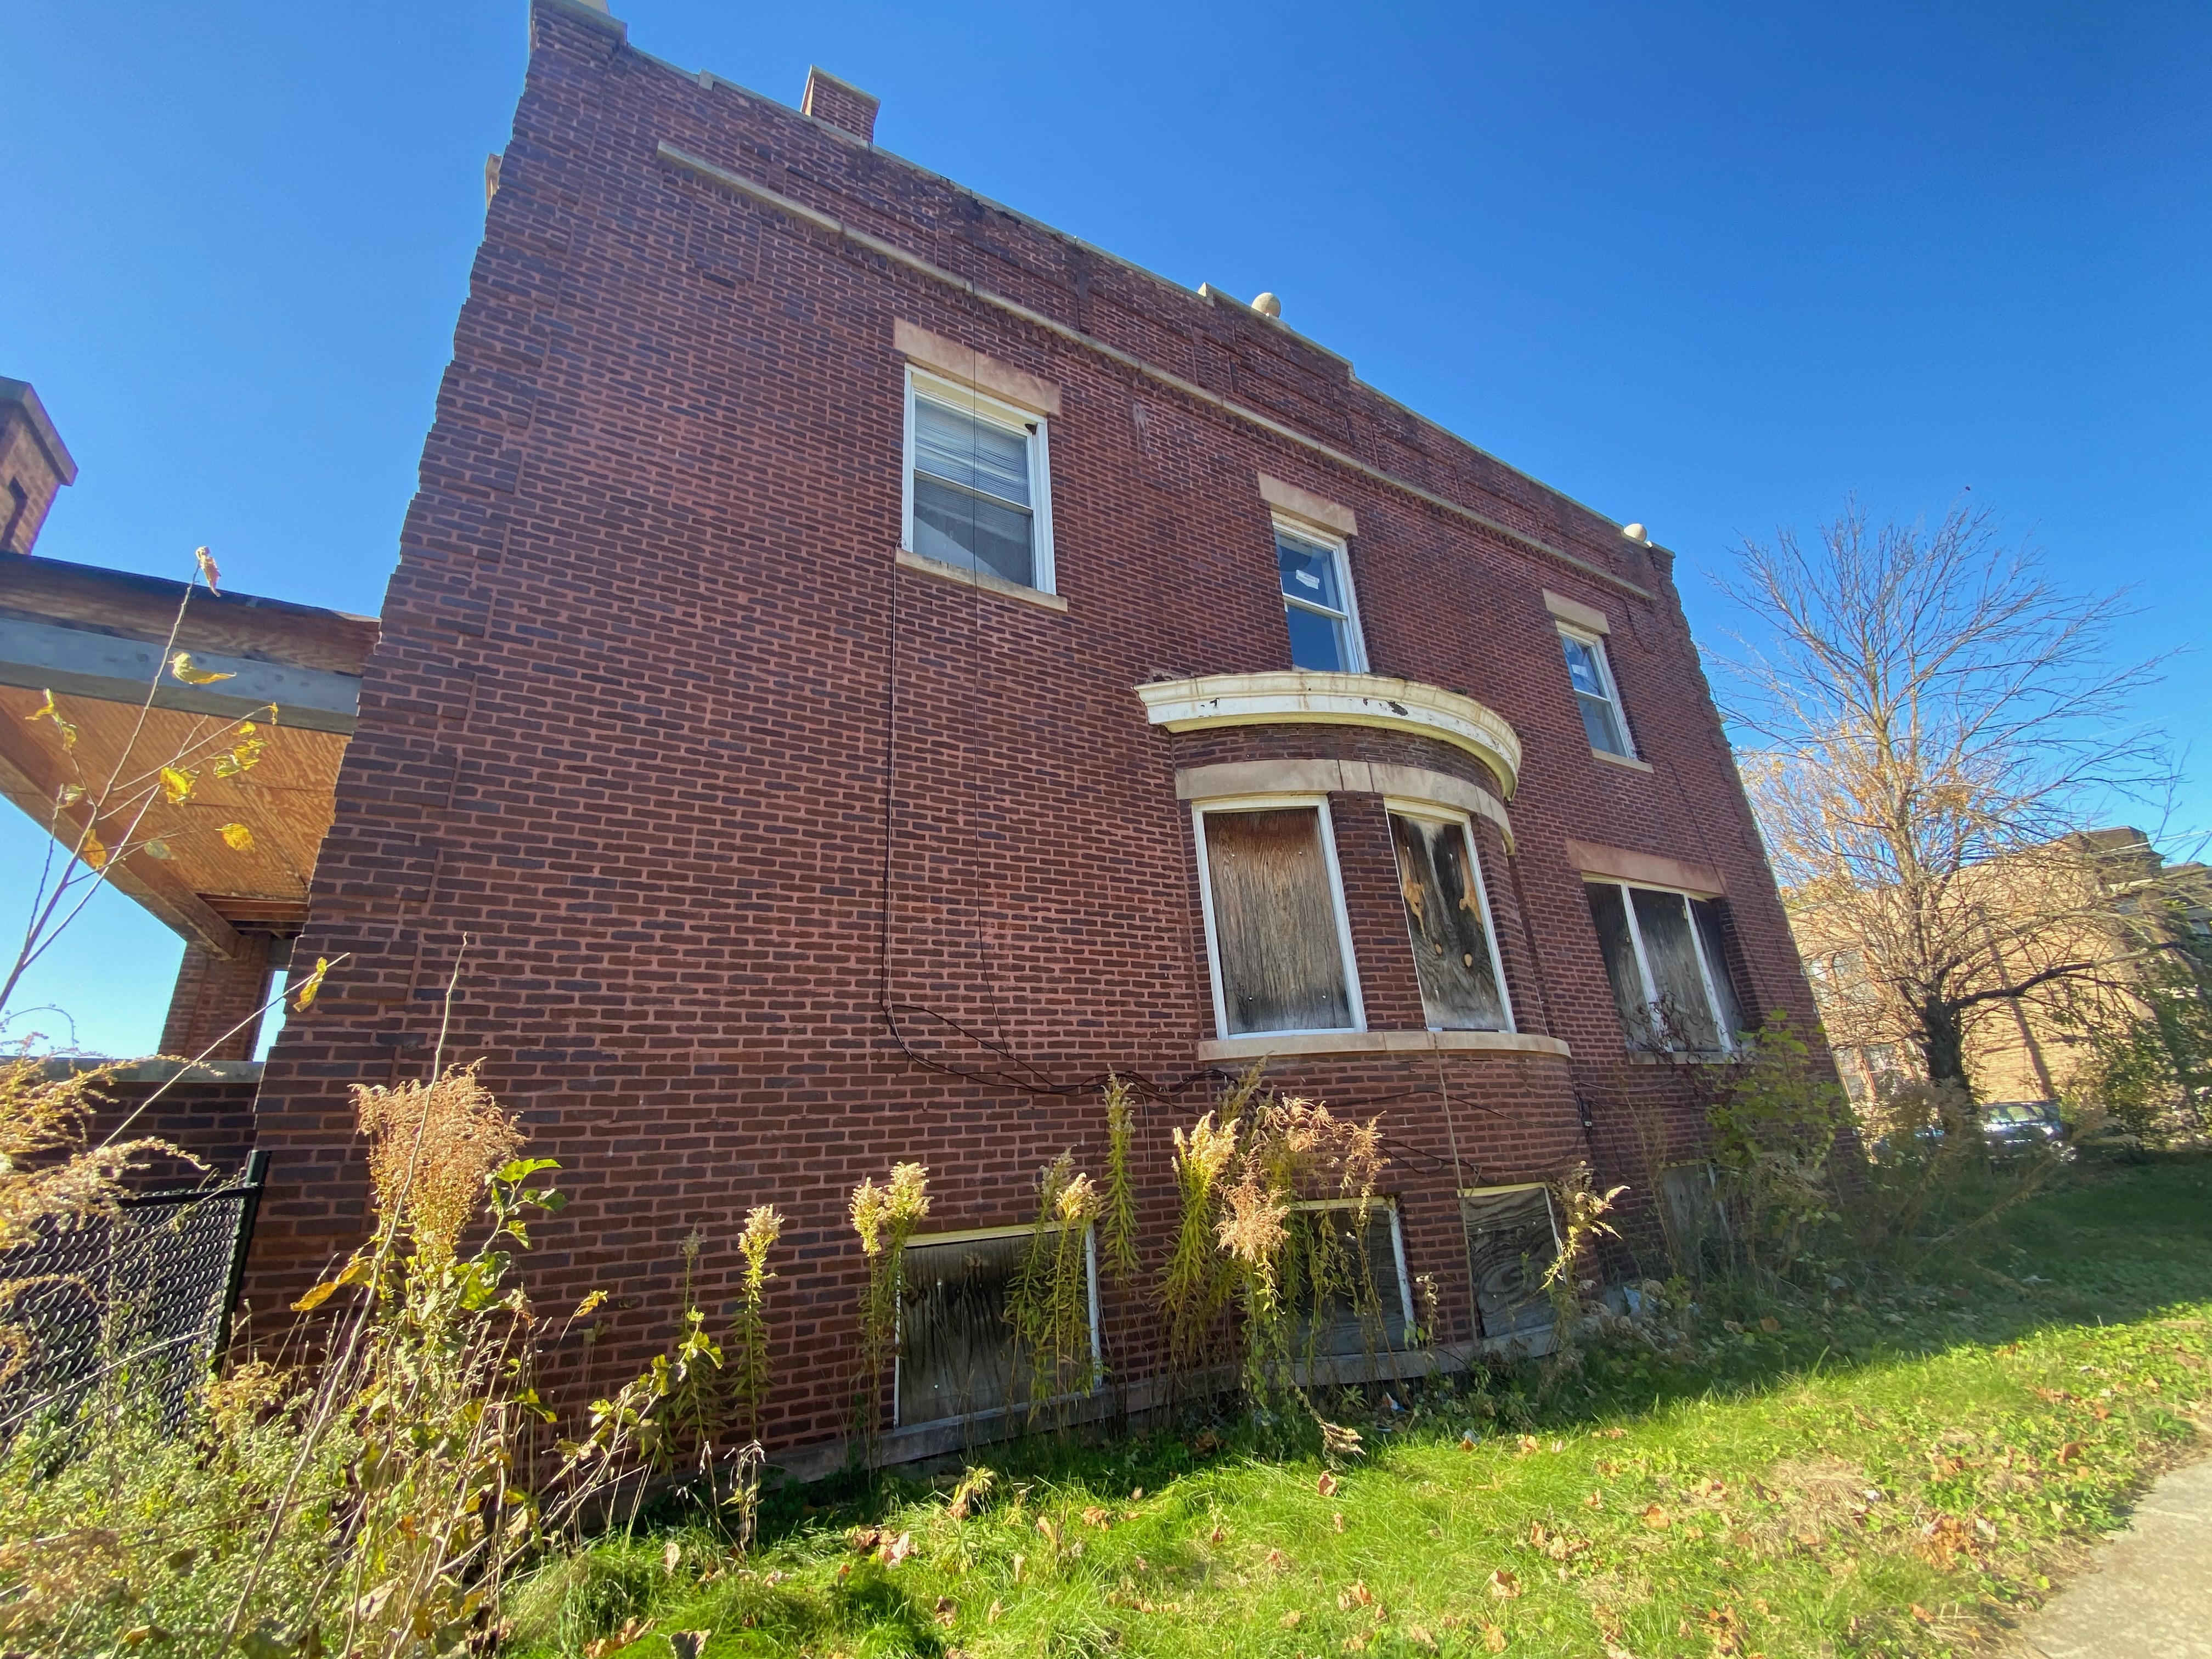 Off Market Single Family In Englewood | Property Plug